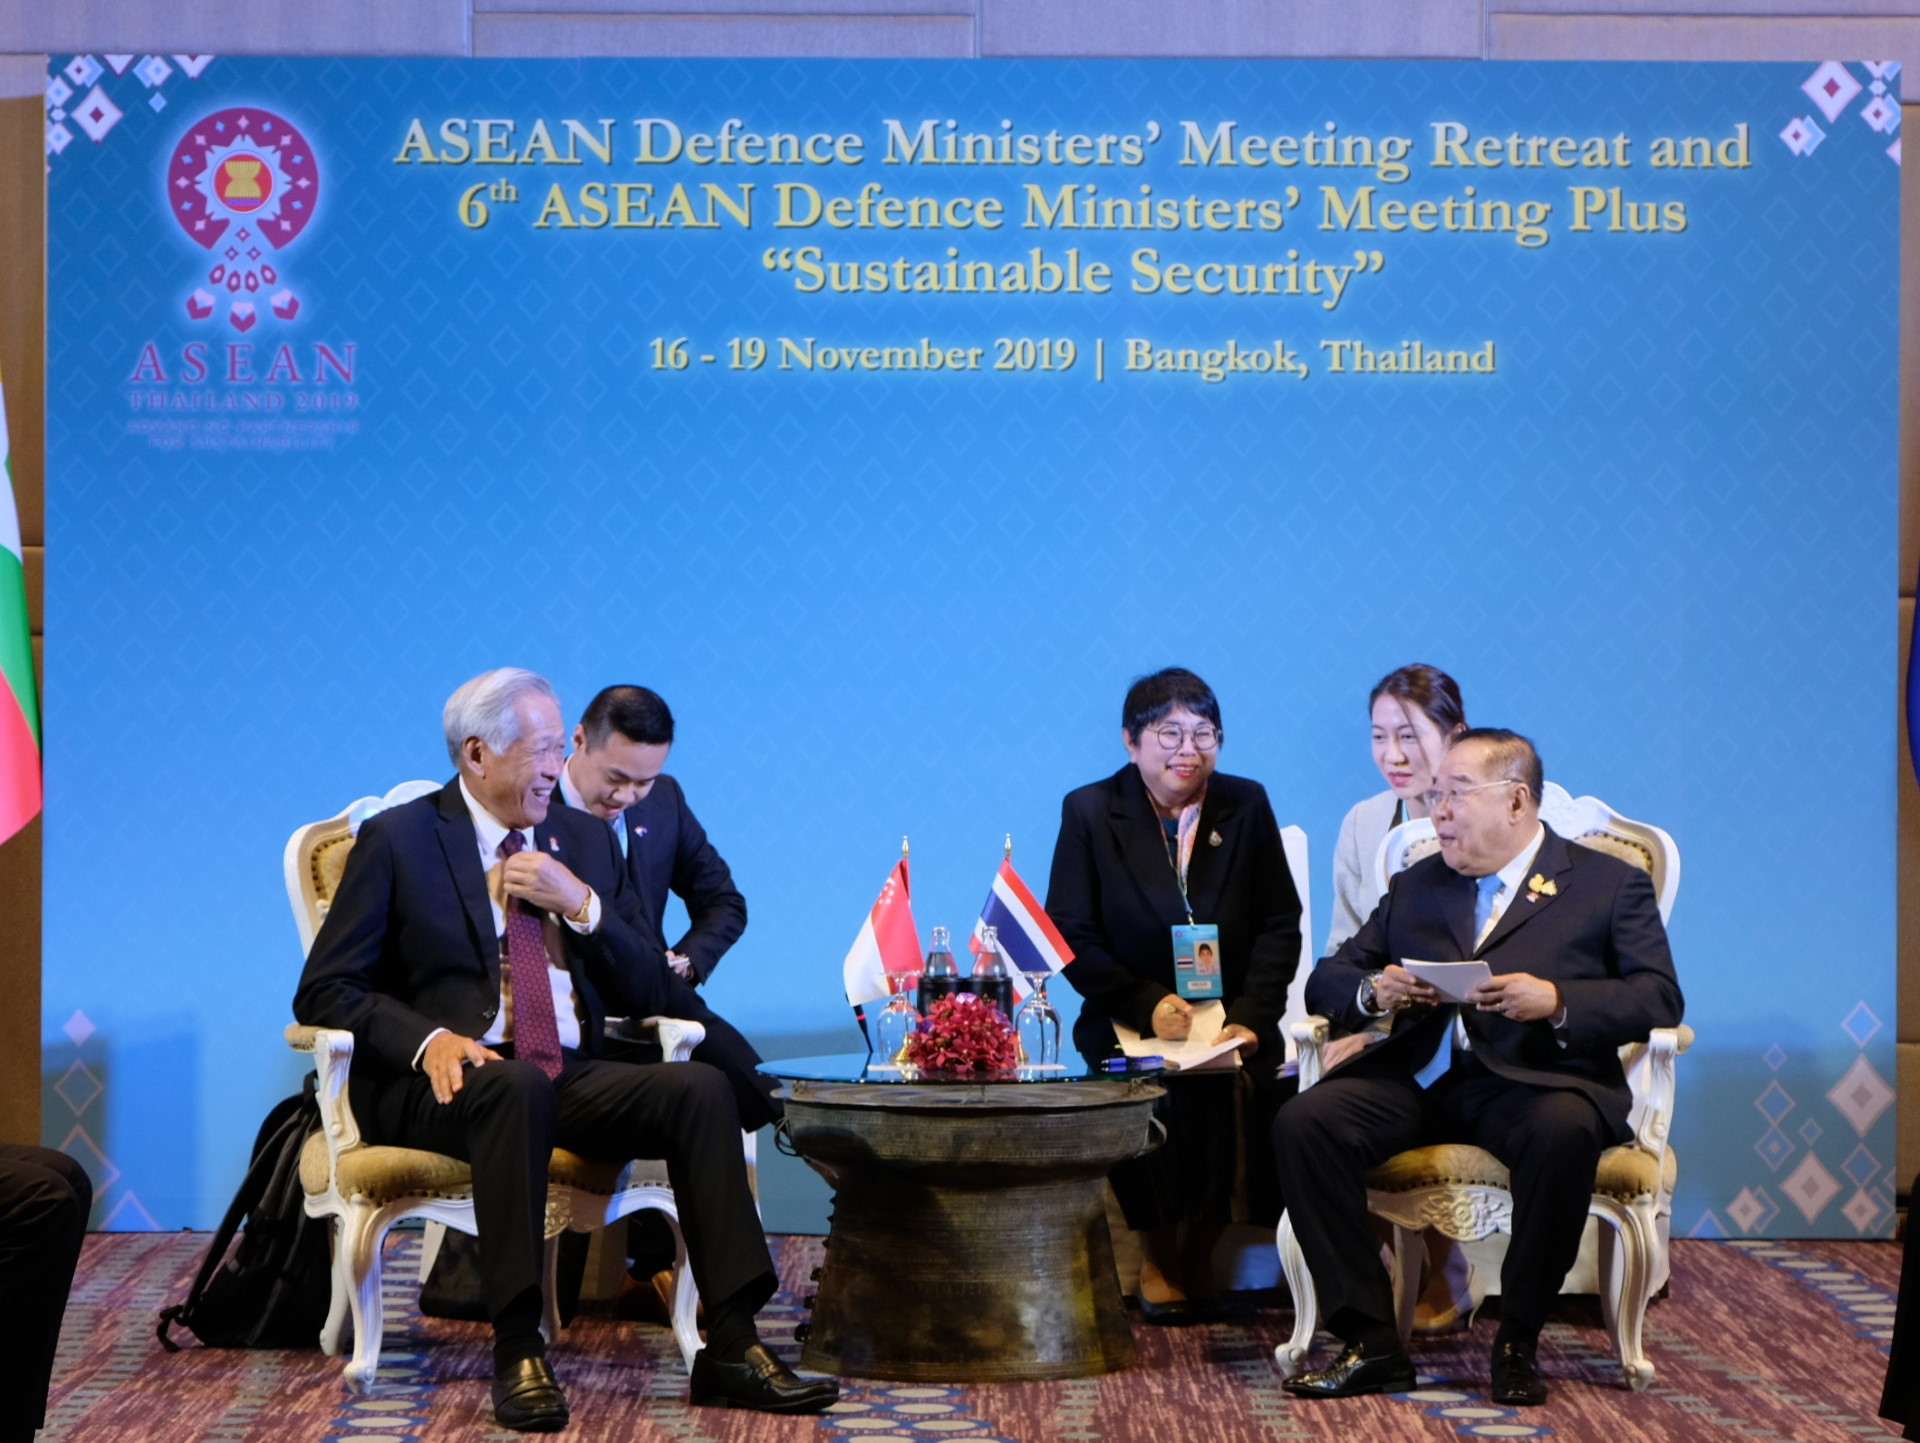 Dr Ng met Thailand's Deputy Prime Minister General (GEN) Prawit Wongsuwan on the sidelines of the ADMM Retreat and 6th ADMM-Plus yesterday.